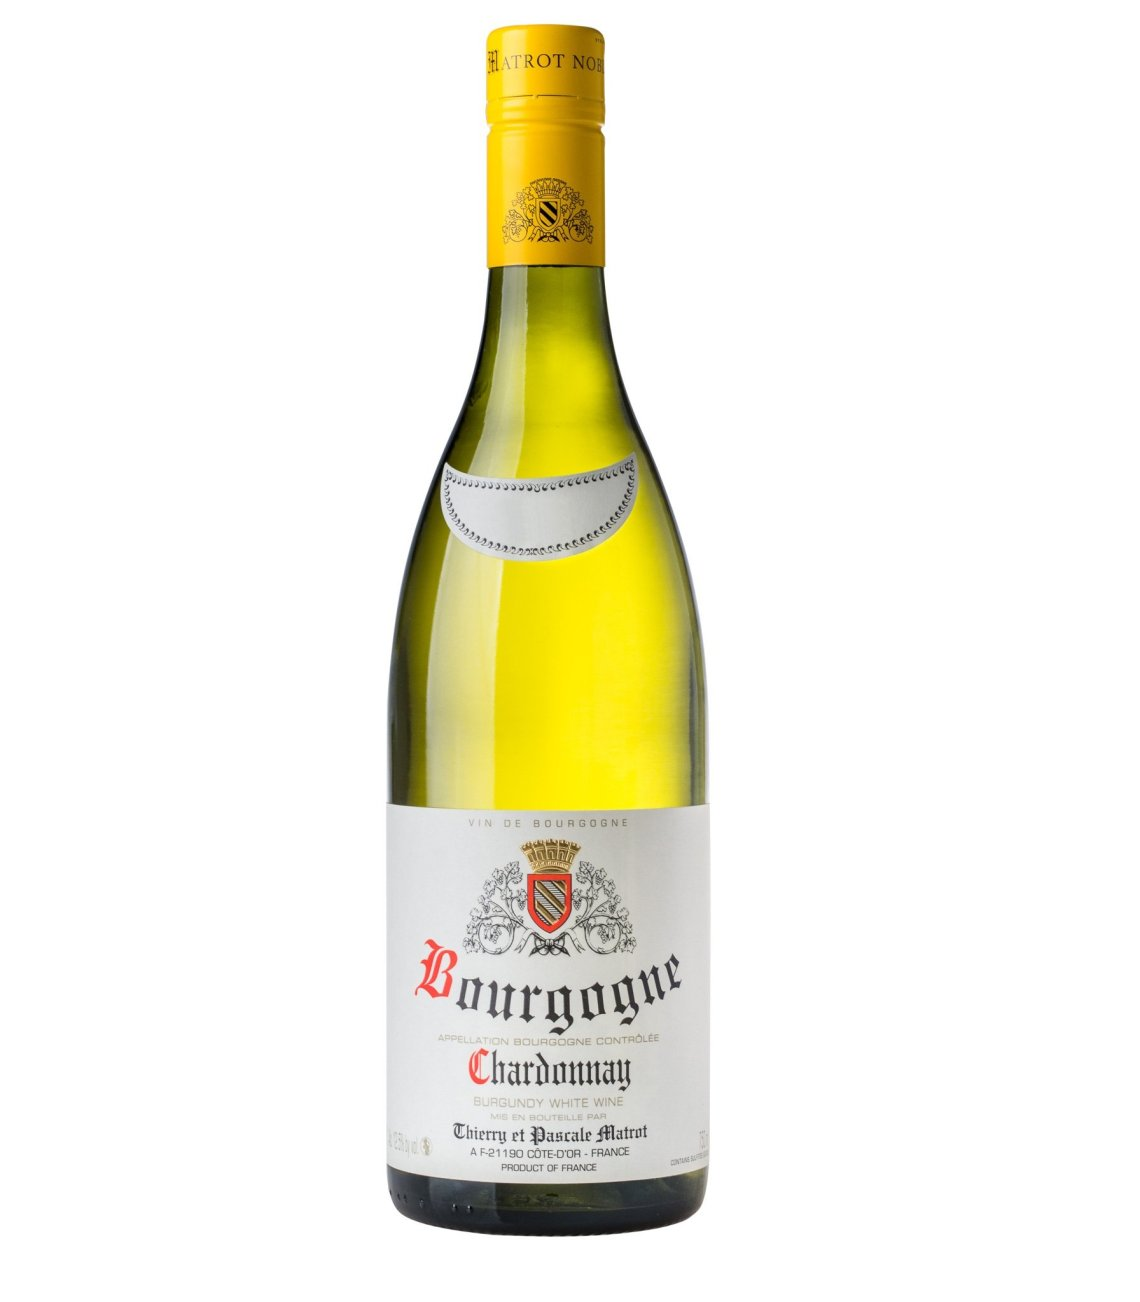 2017 Thierry et Pascale Matrot Bourgogne Chardonnay